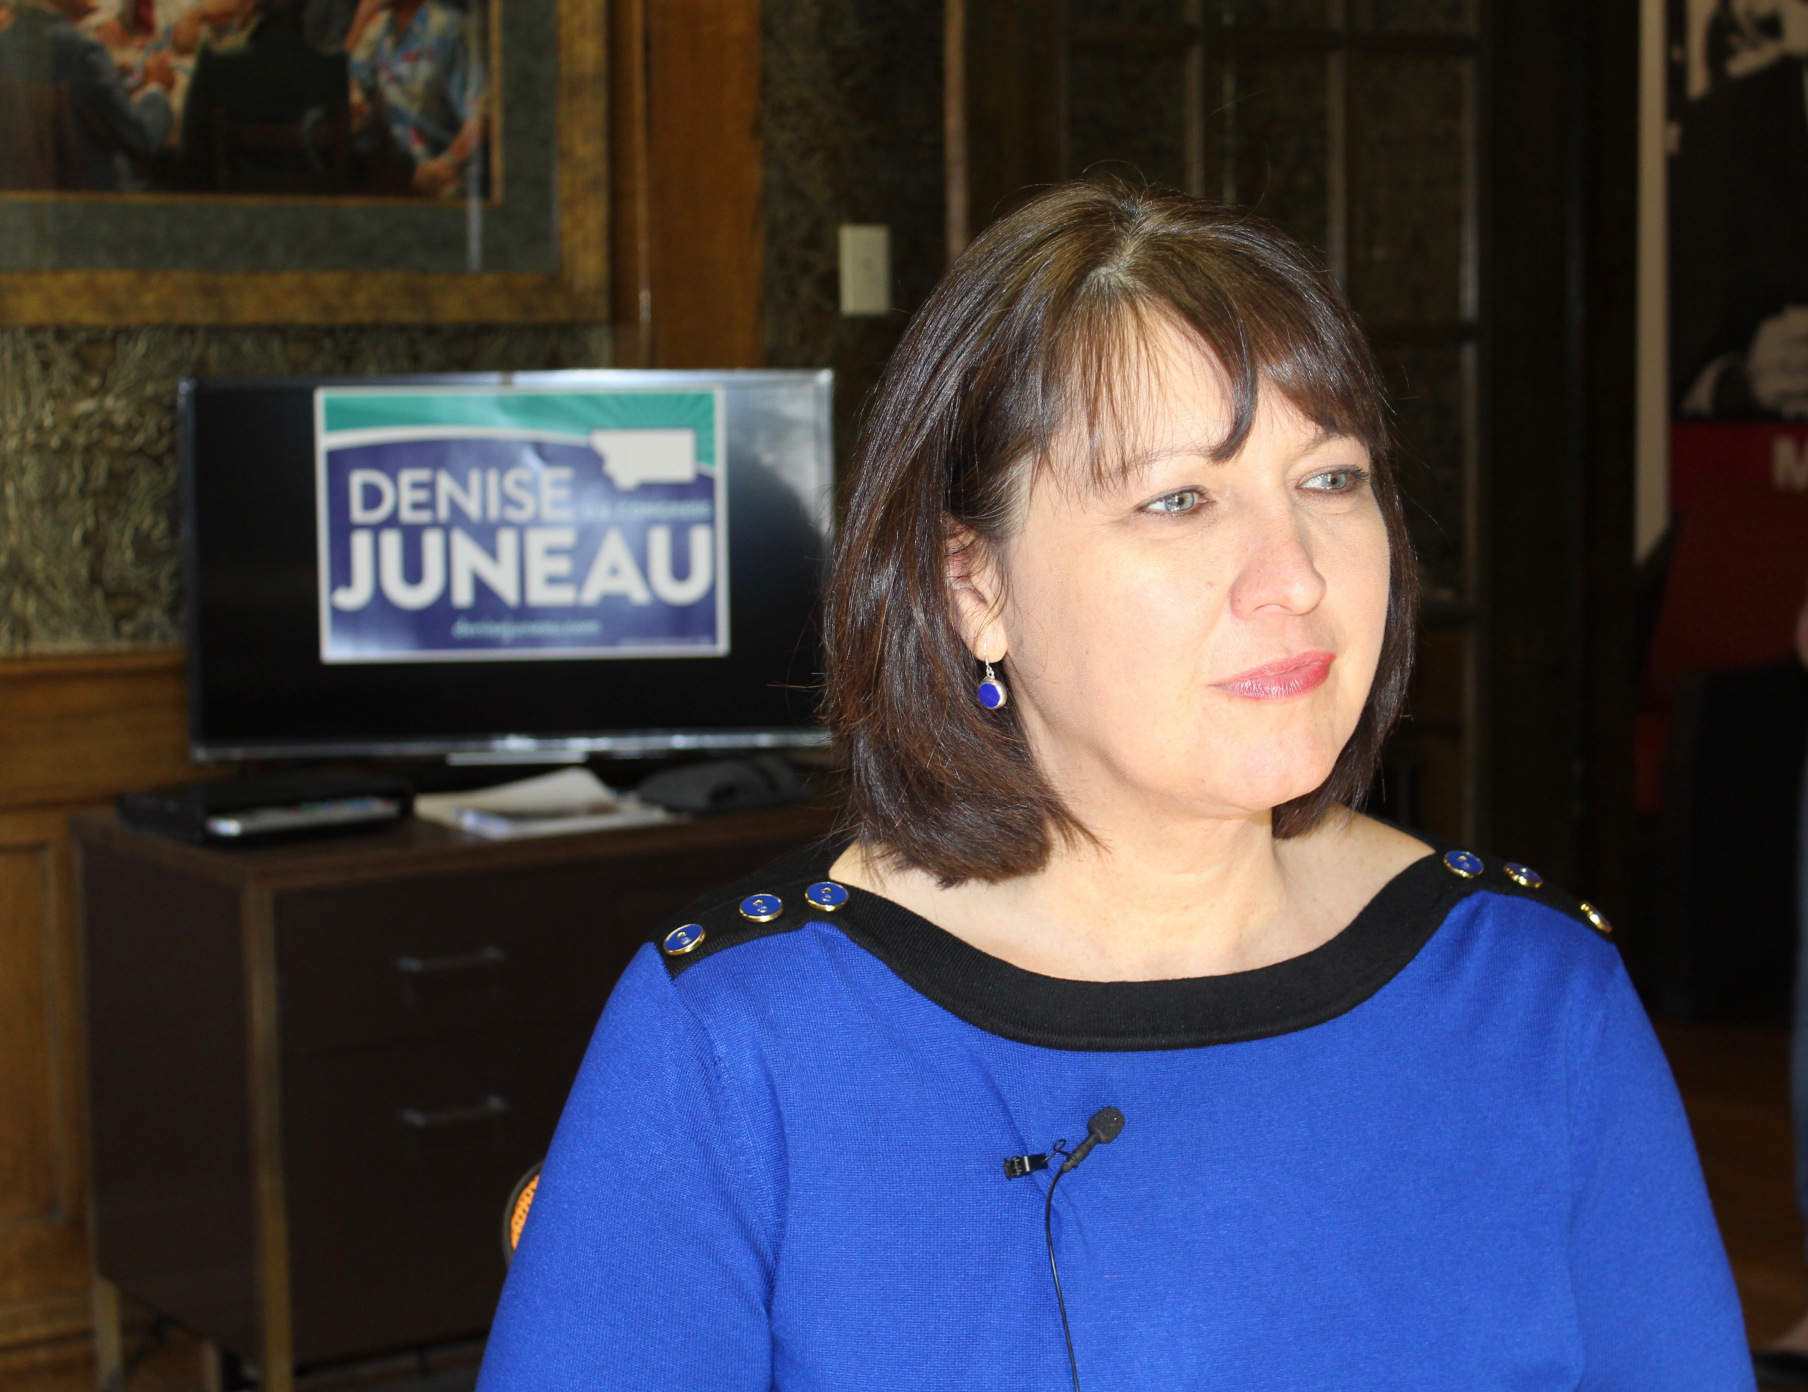 Mark Trahant: Video profile of Congressional candidate Denise Juneau